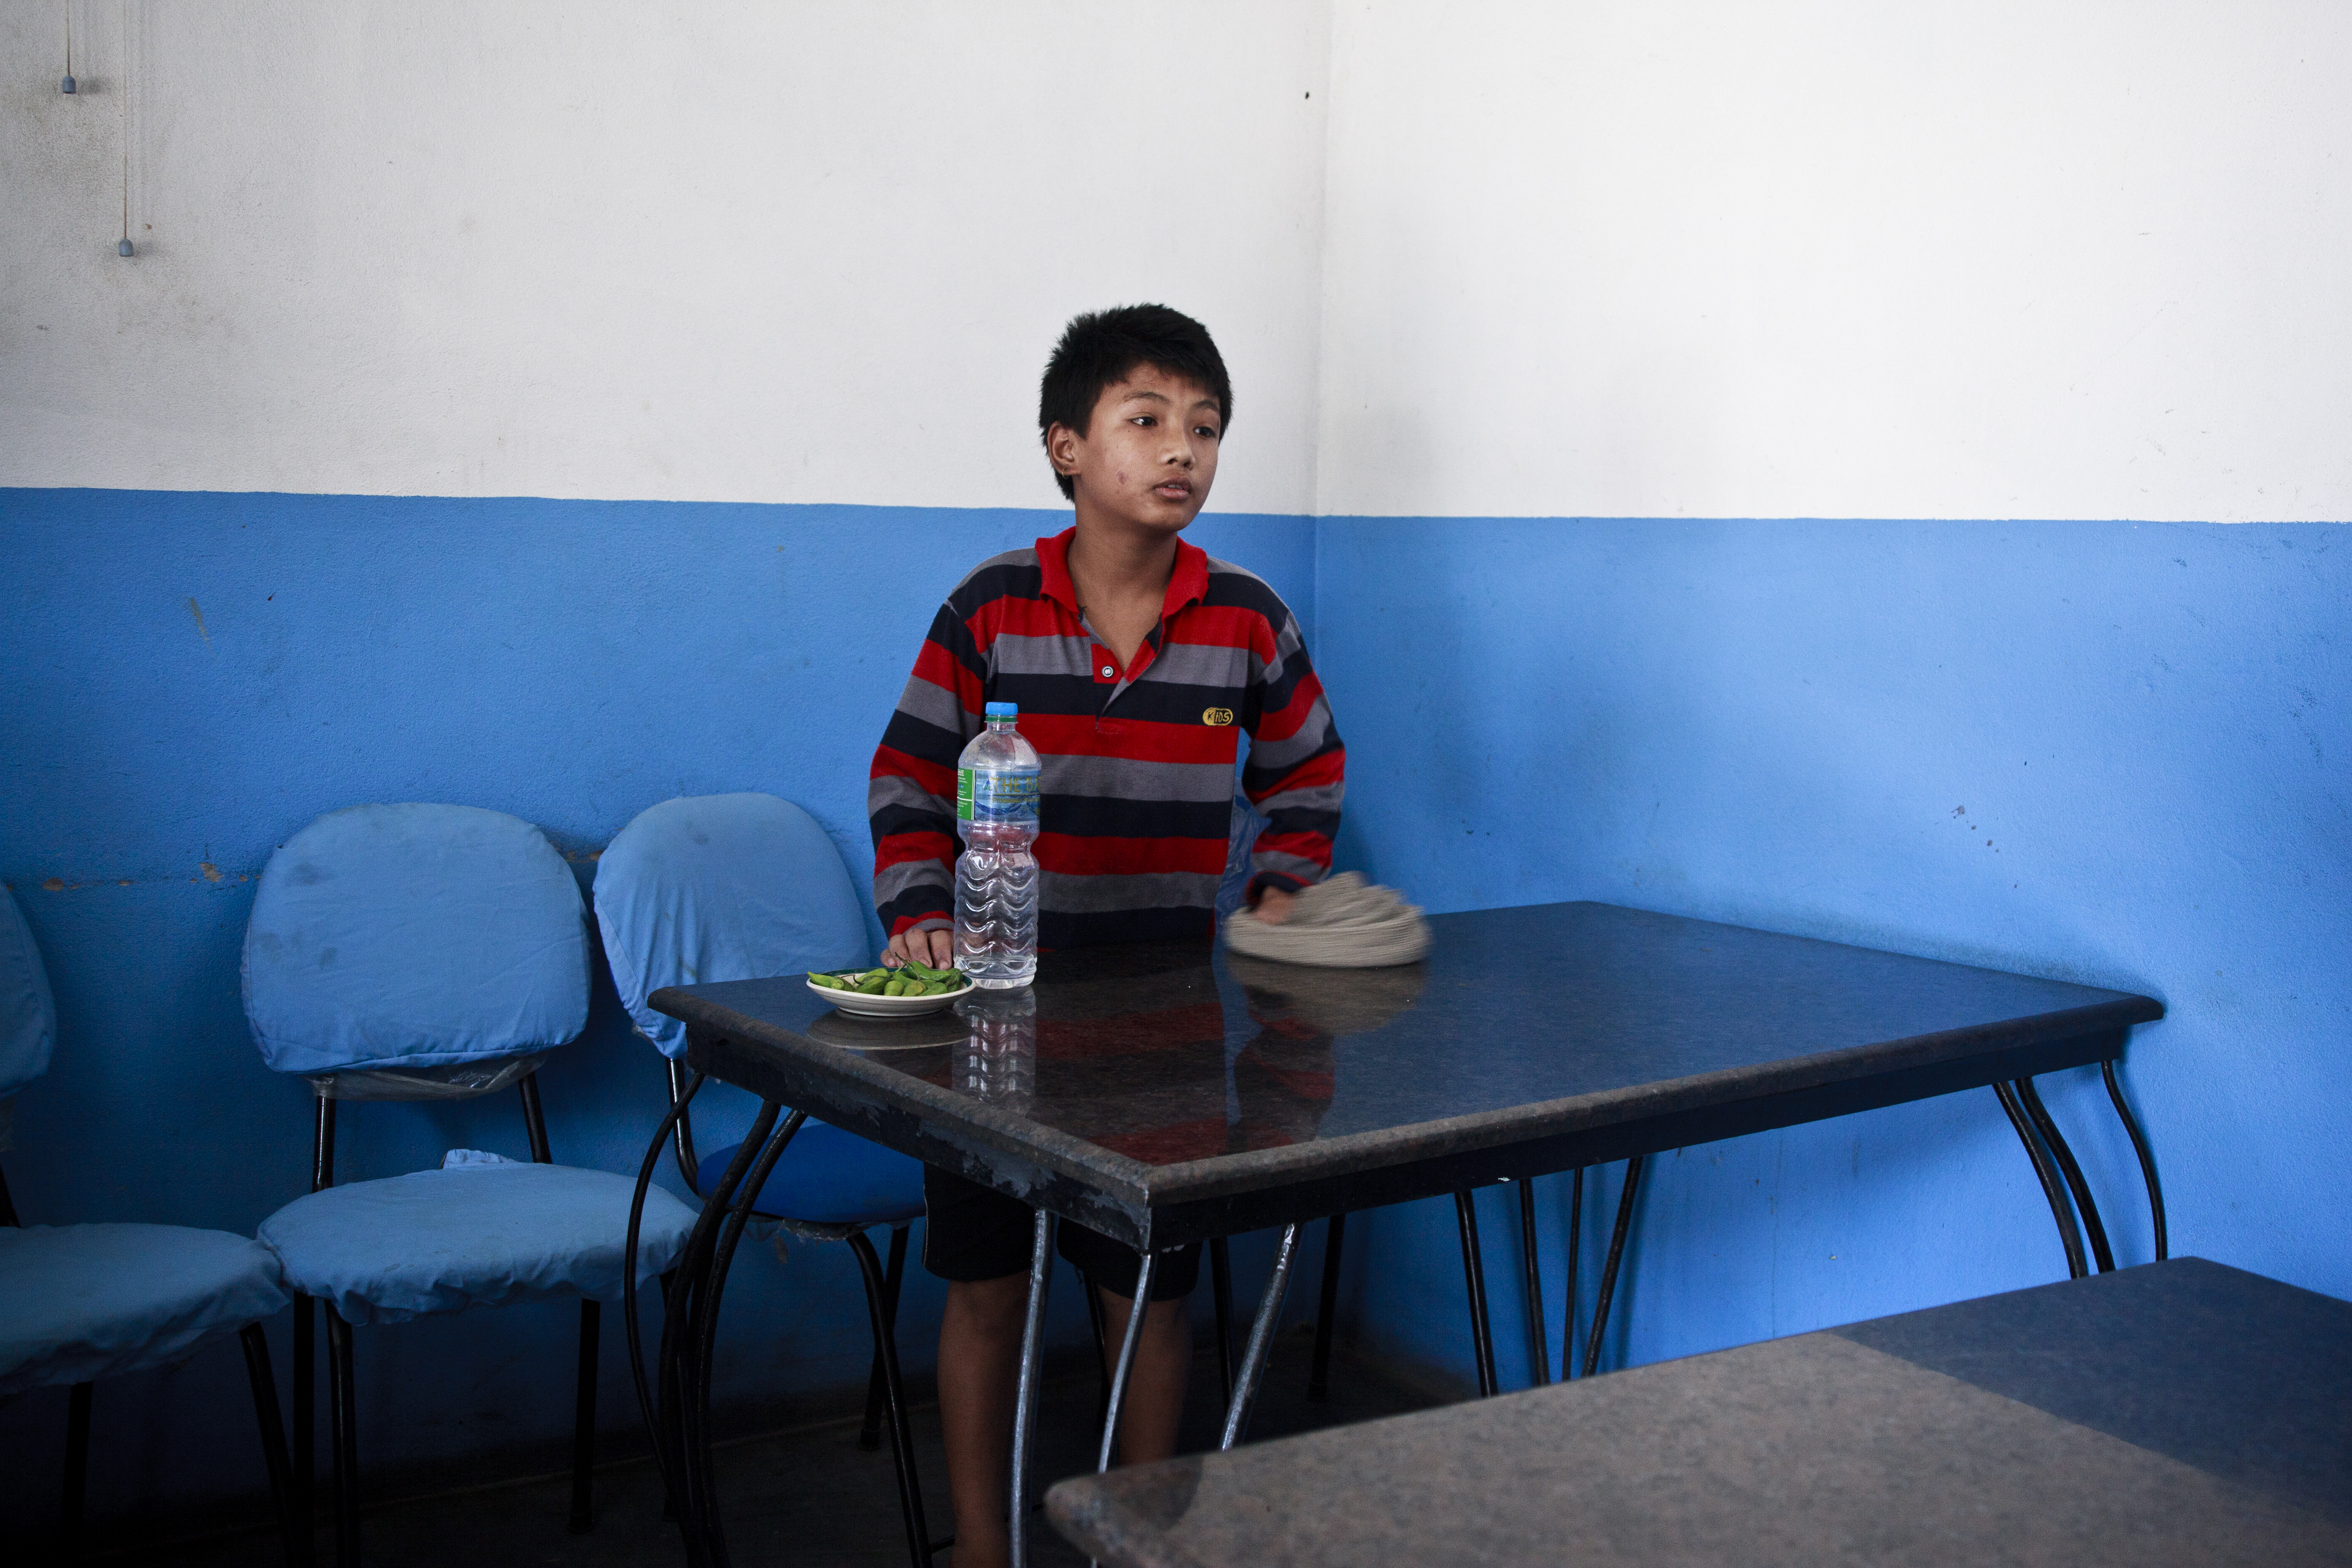 Education in Nepal: The problem runs deeper than getting